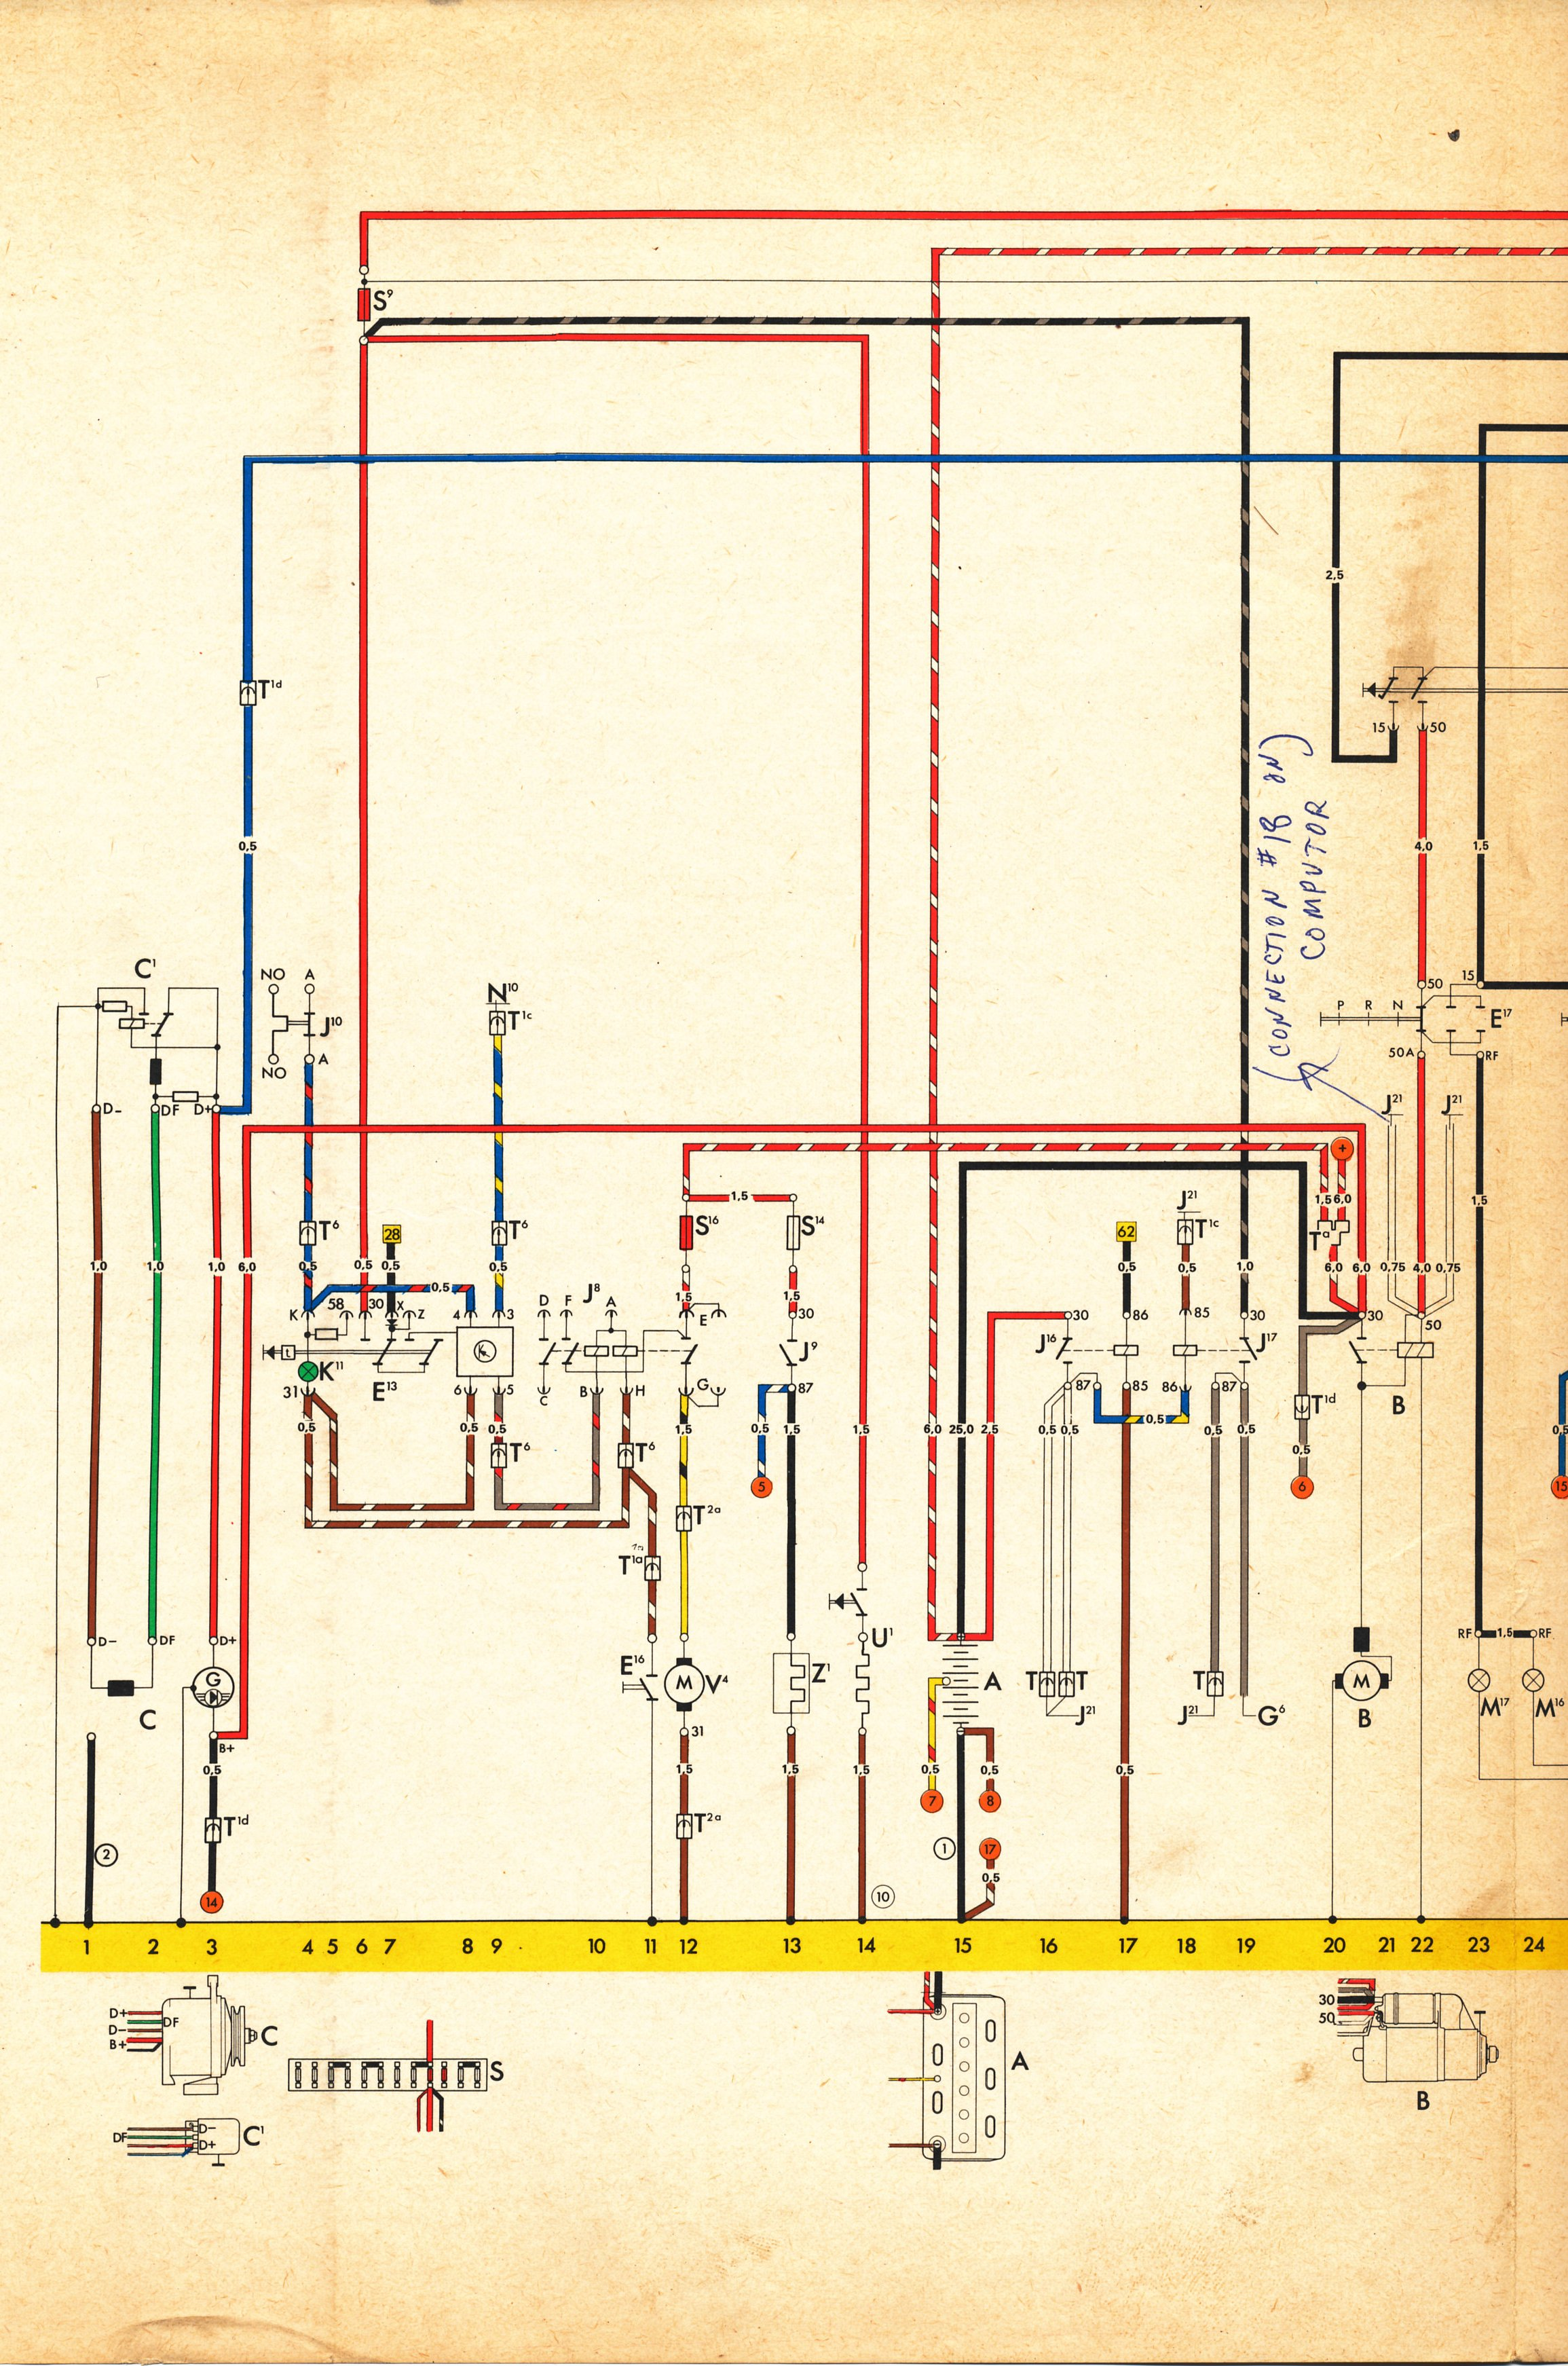 vw type 3 fuel injection wiring diagram 4 prong cane get free image about